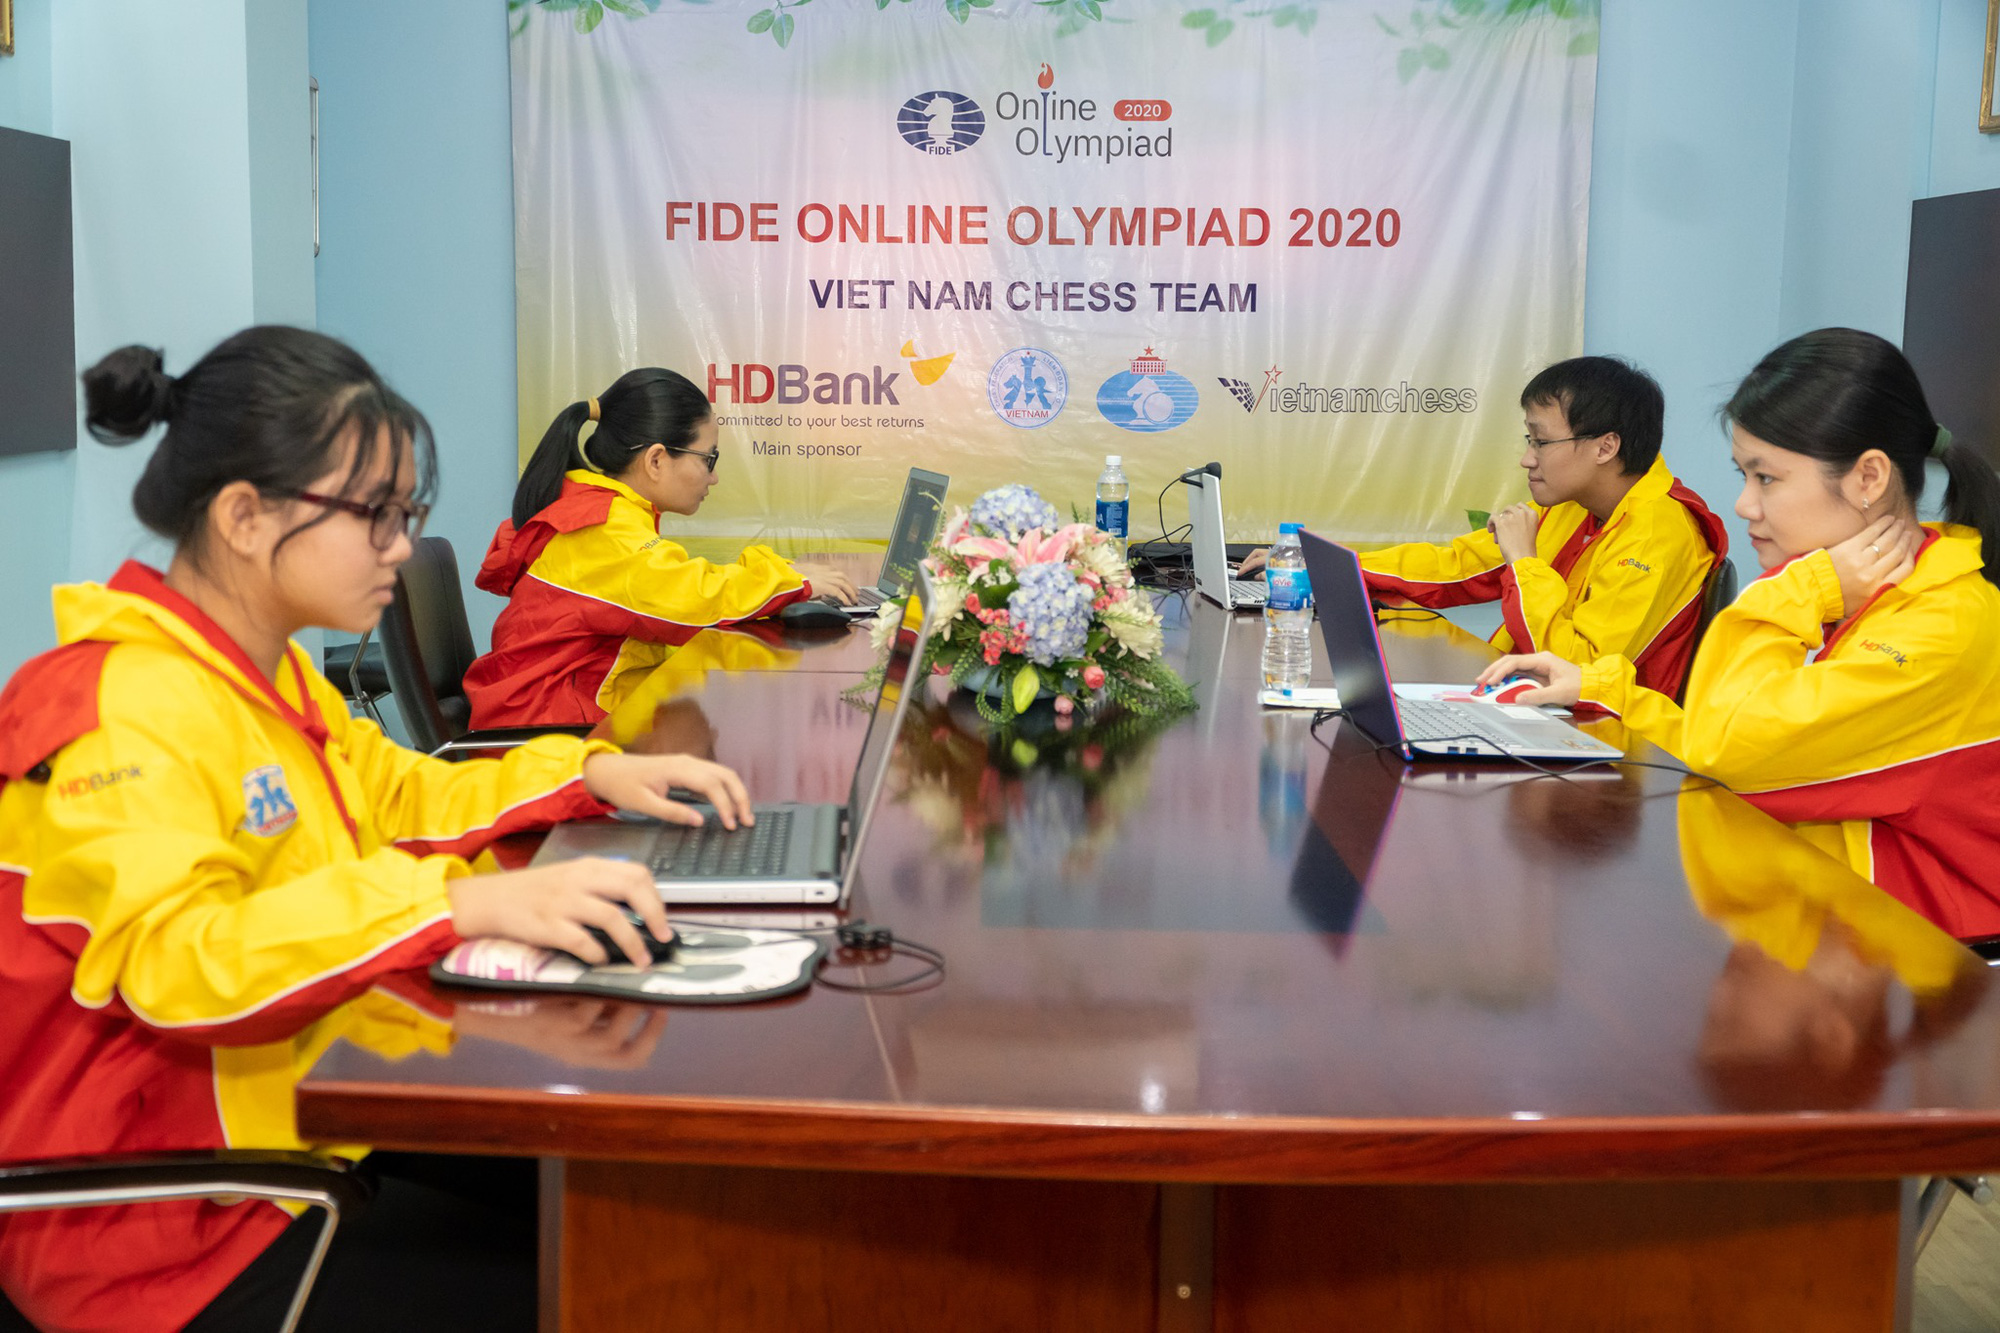 Vietnam eliminated early from online chess Olympiad 2020